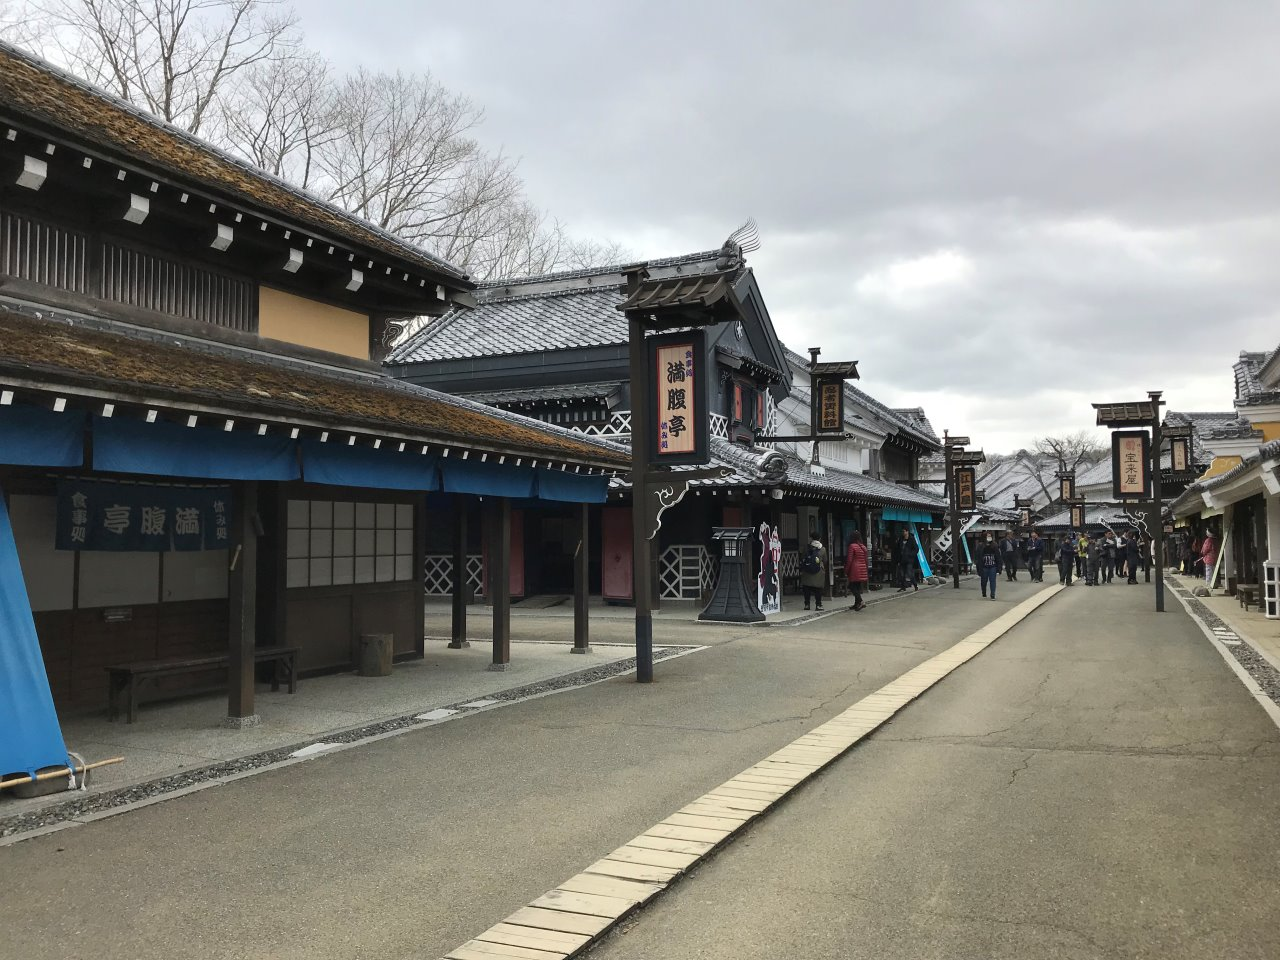 We were so impressed by the set up of the theme park highlightingthe Edo Period.